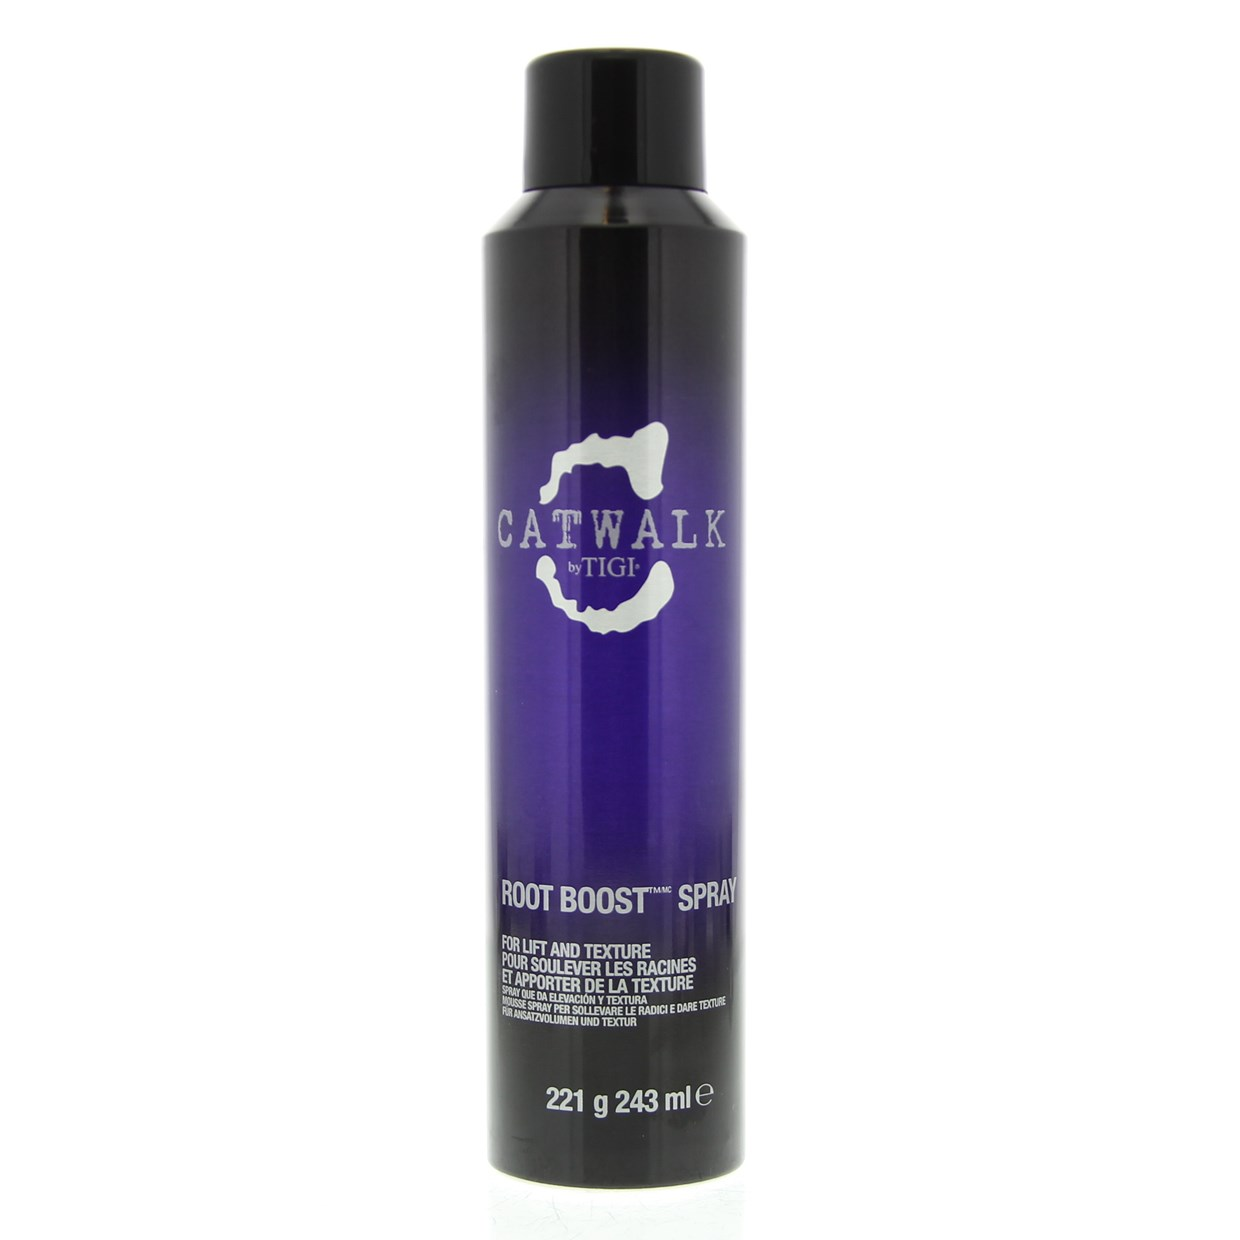 Catwalk Styling & Finishing Root Boost Spray - 0